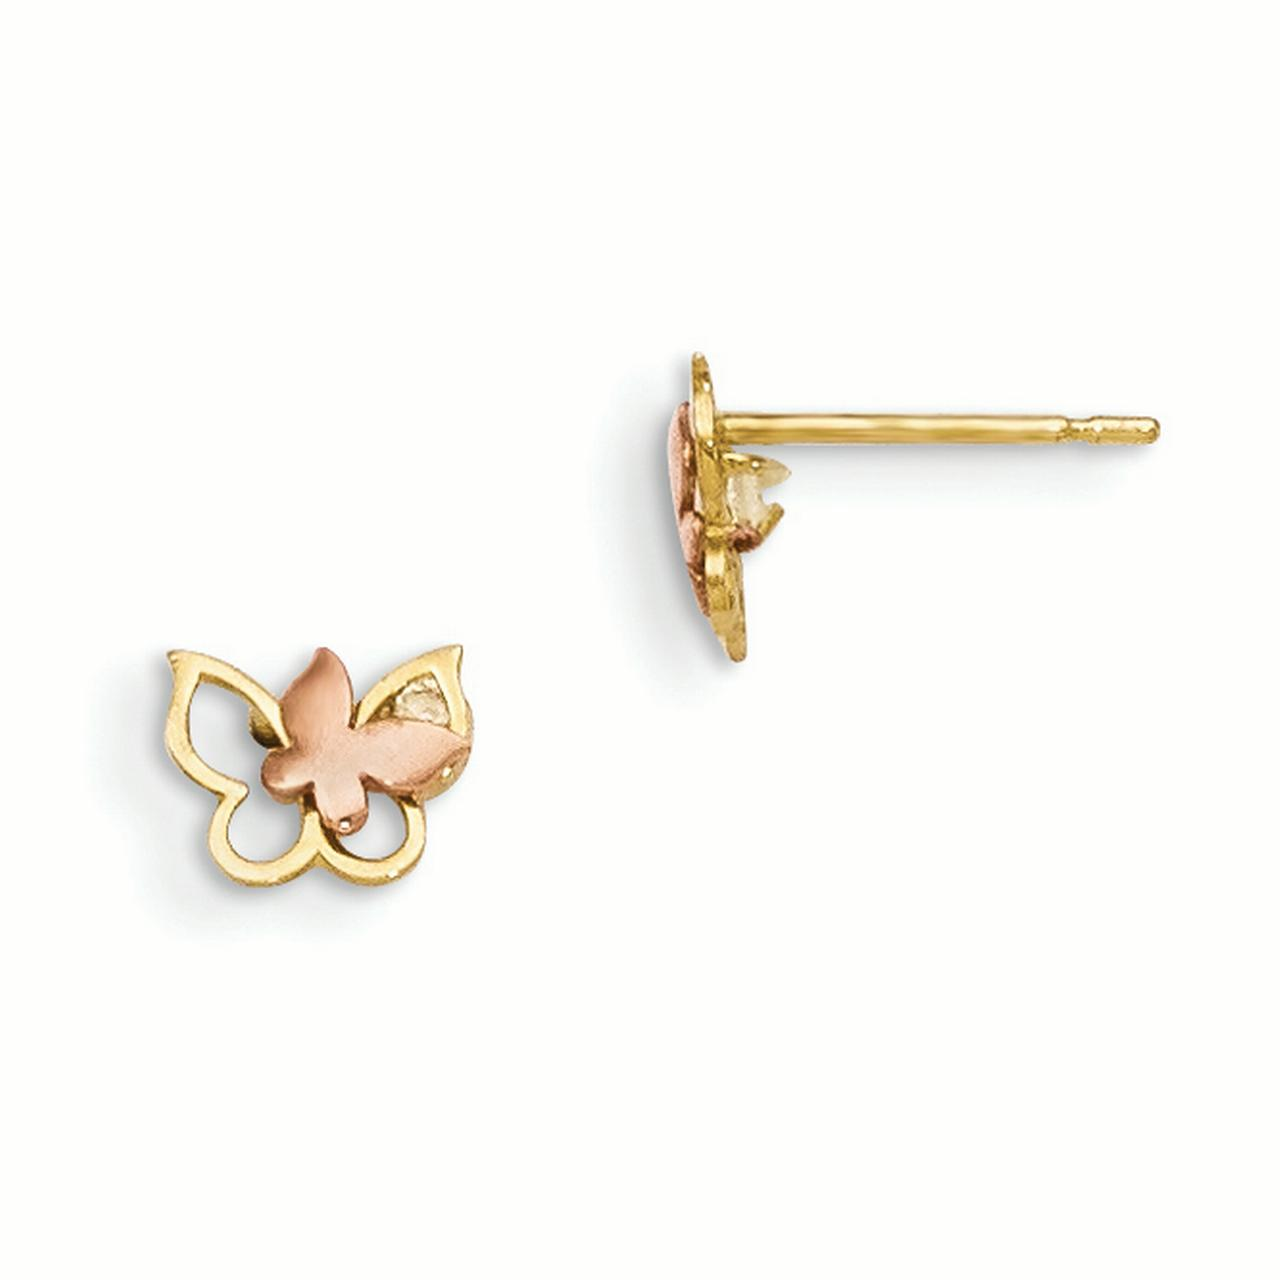 14k Yellow and White Gold Yellow & Rose Gold Madi K CZ Children's Butterfly Post Earrings Length 7mm - image 2 of 2